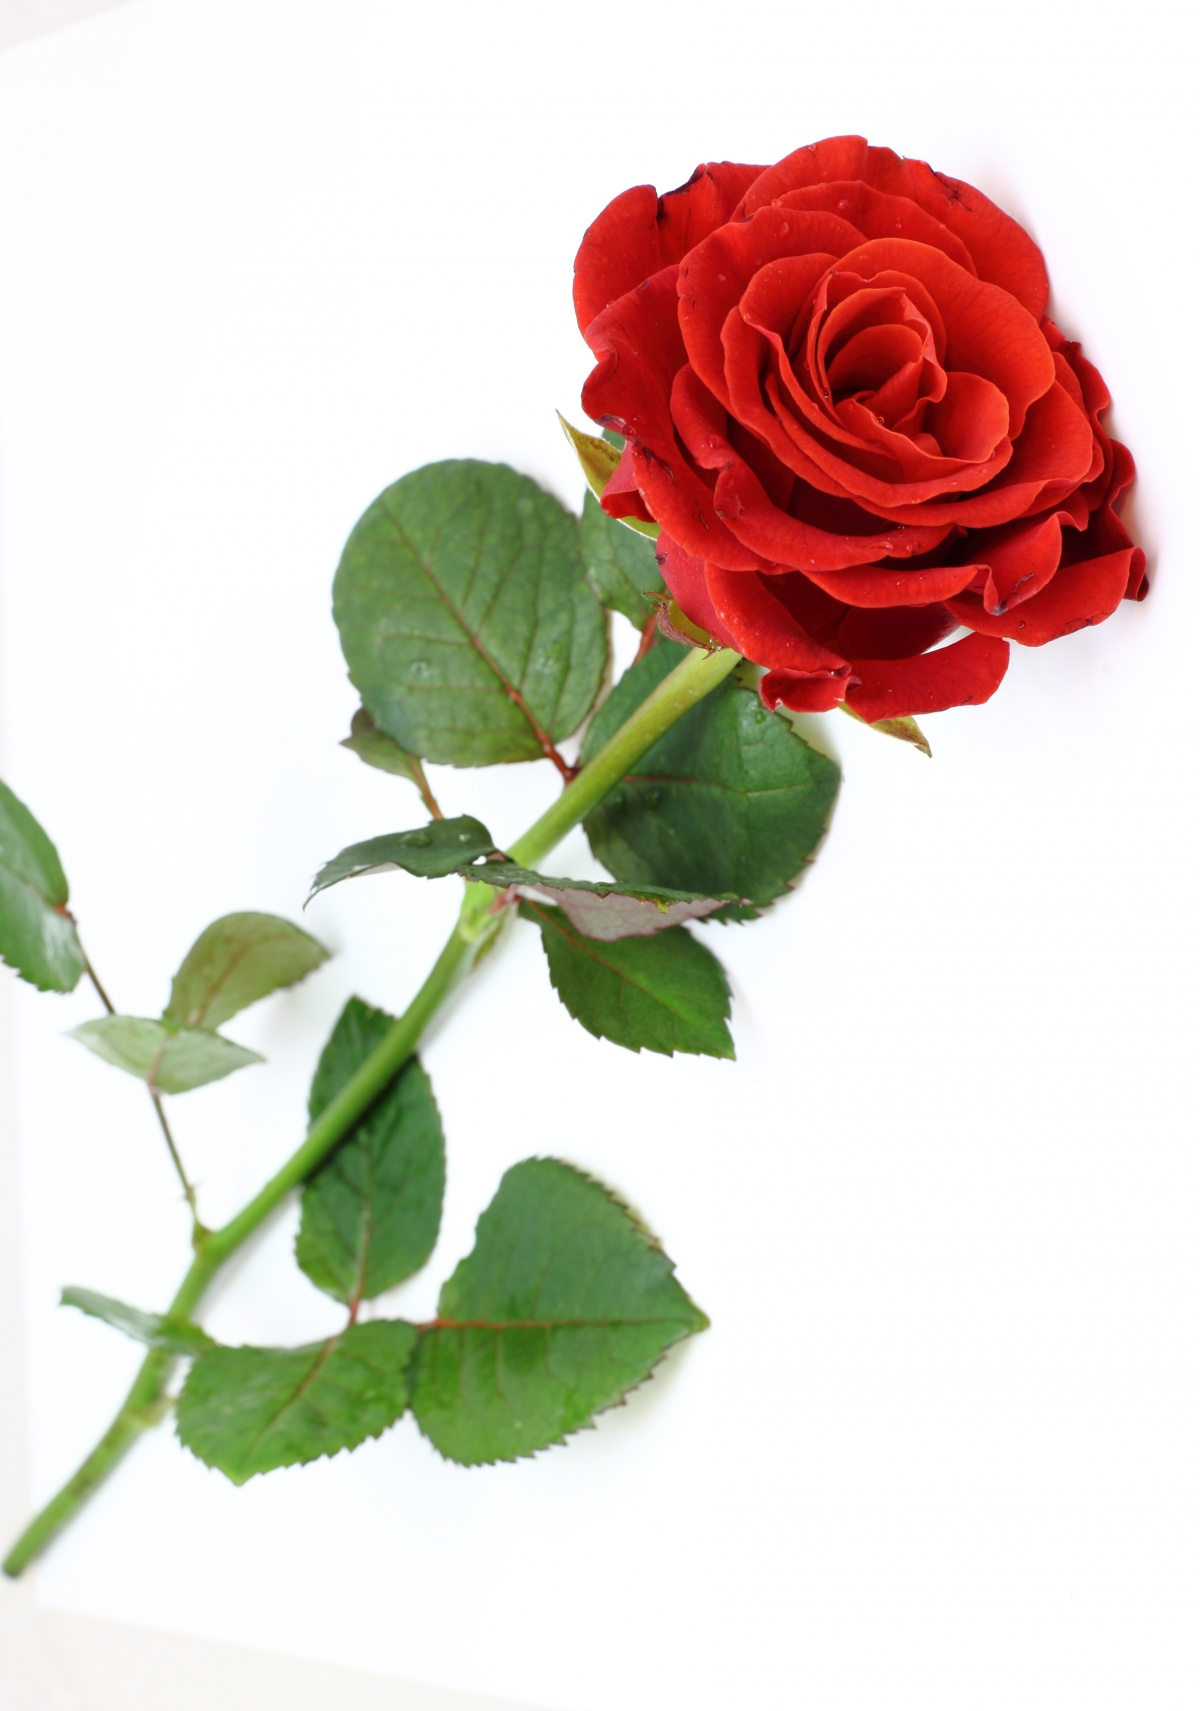 arbeen red rose  Rose